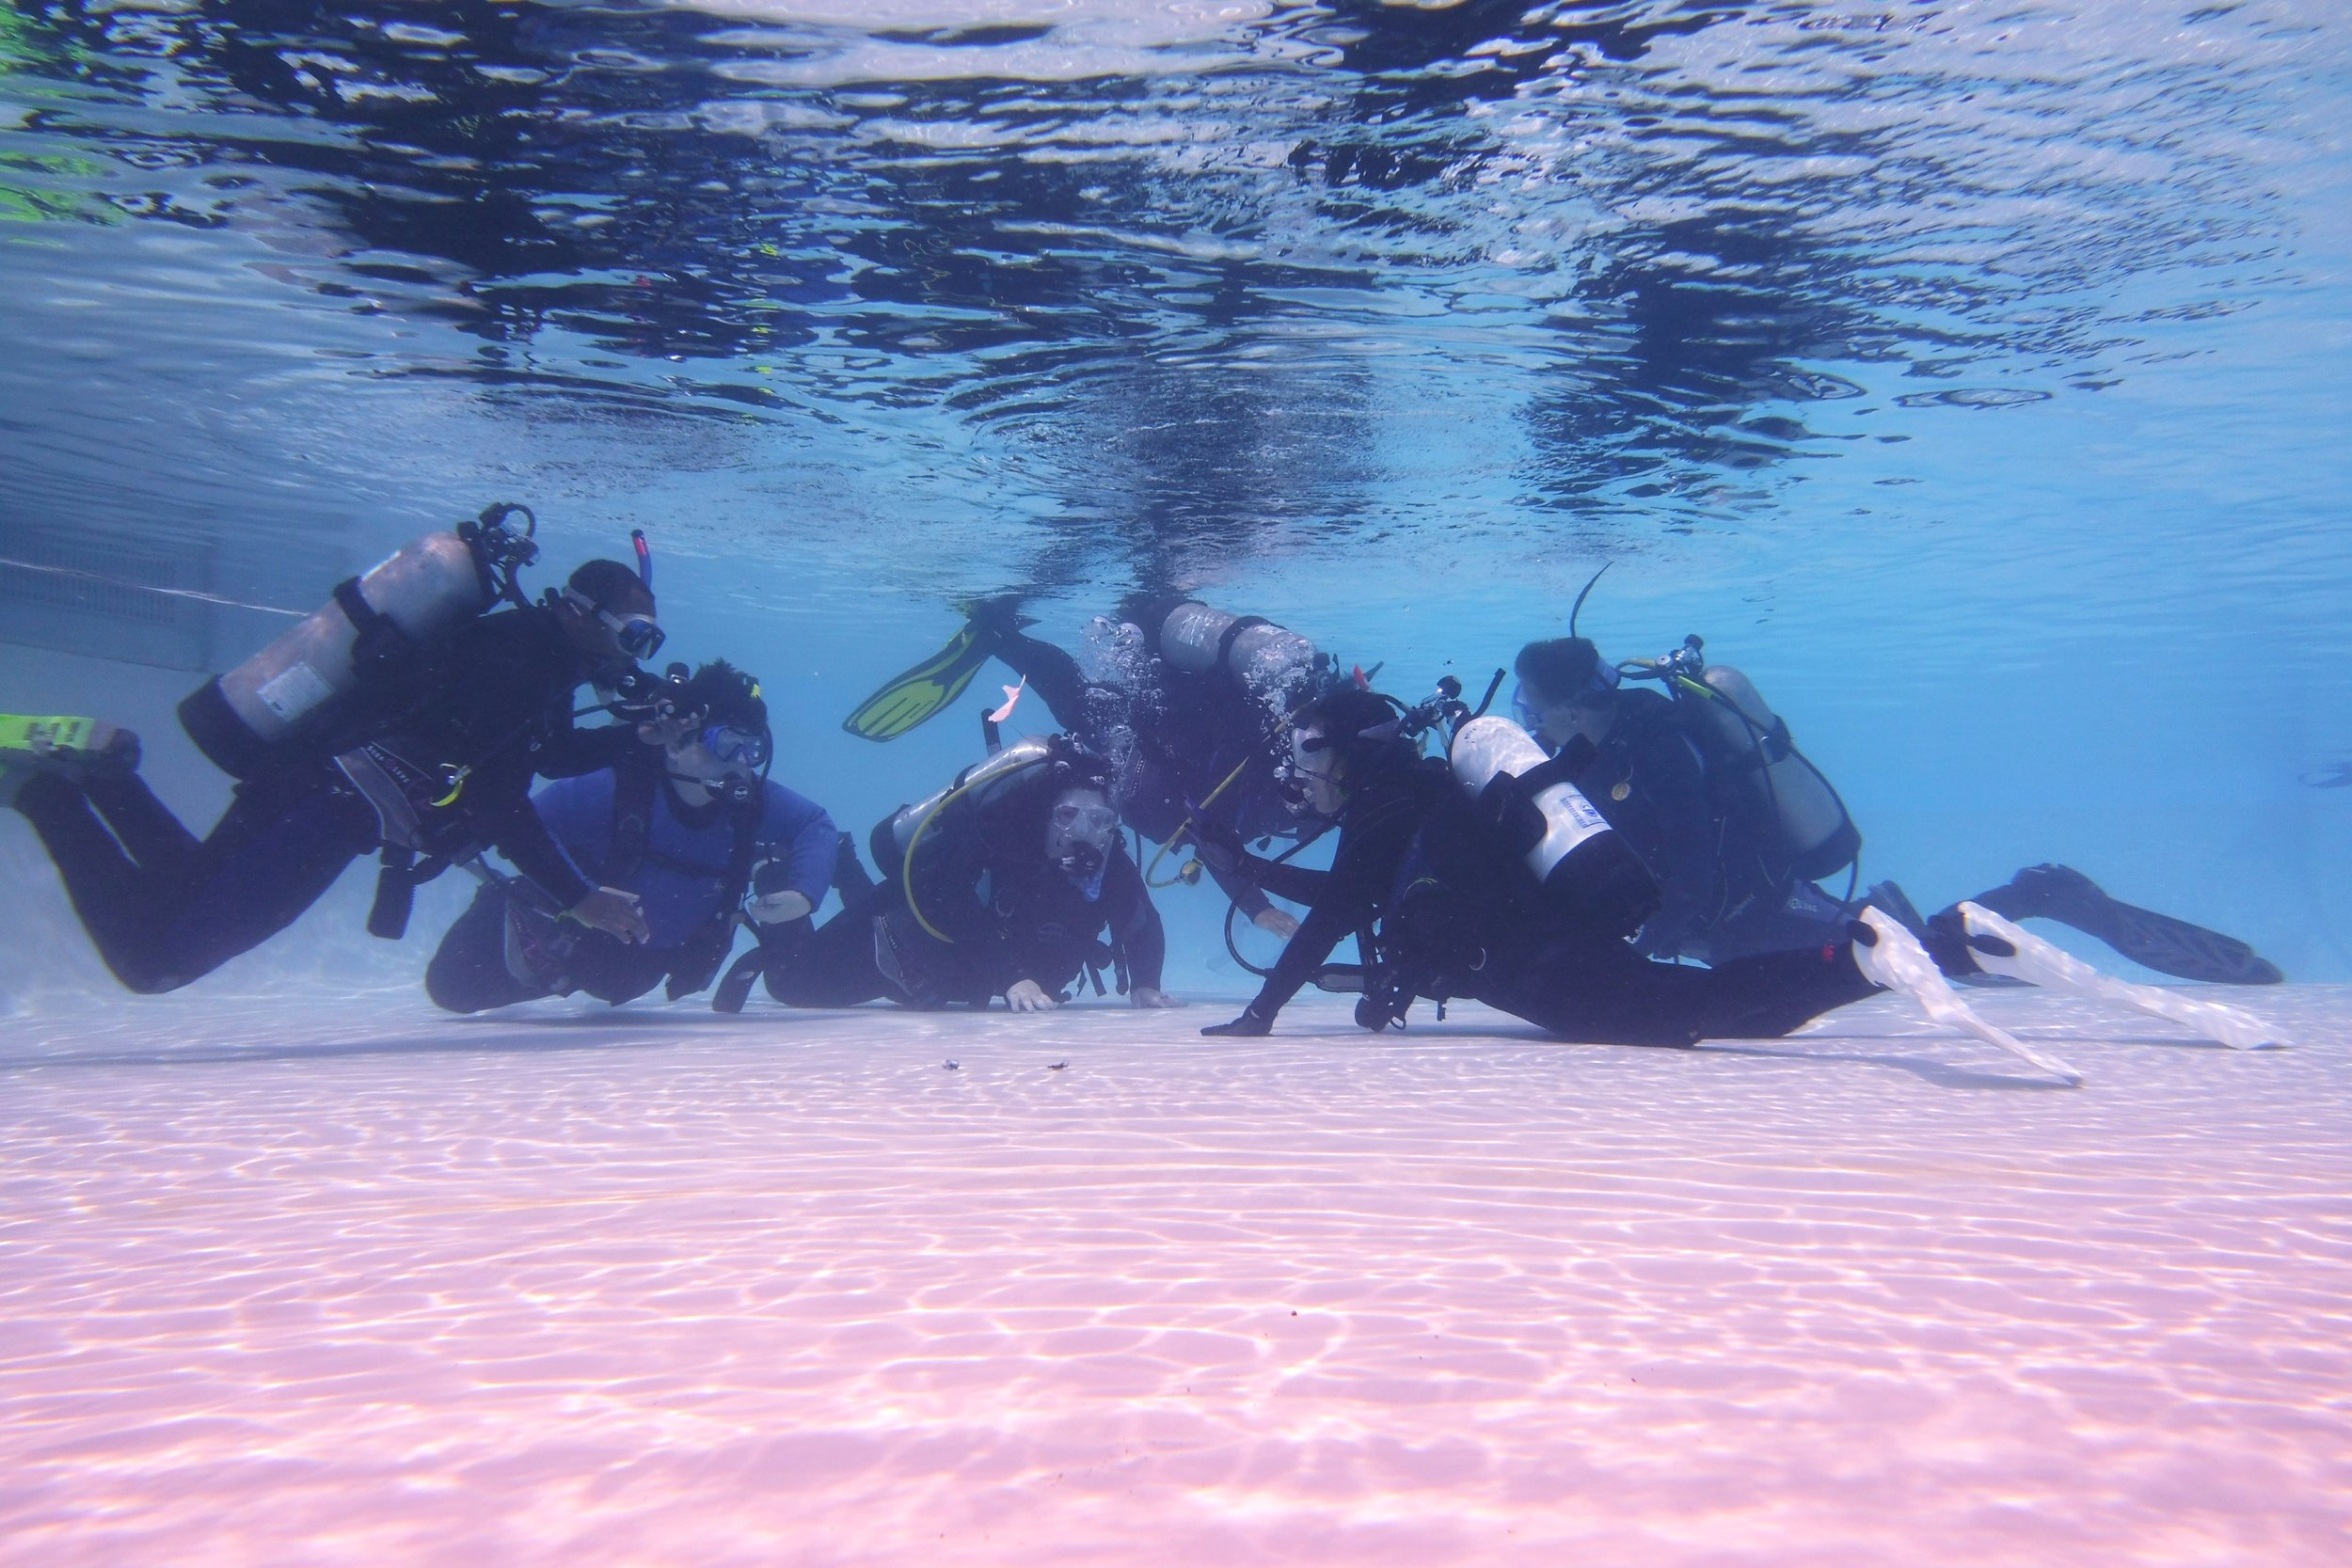 CLASSES - We have scuba instructors ready to get you trained and PADI certified for your water adventures!